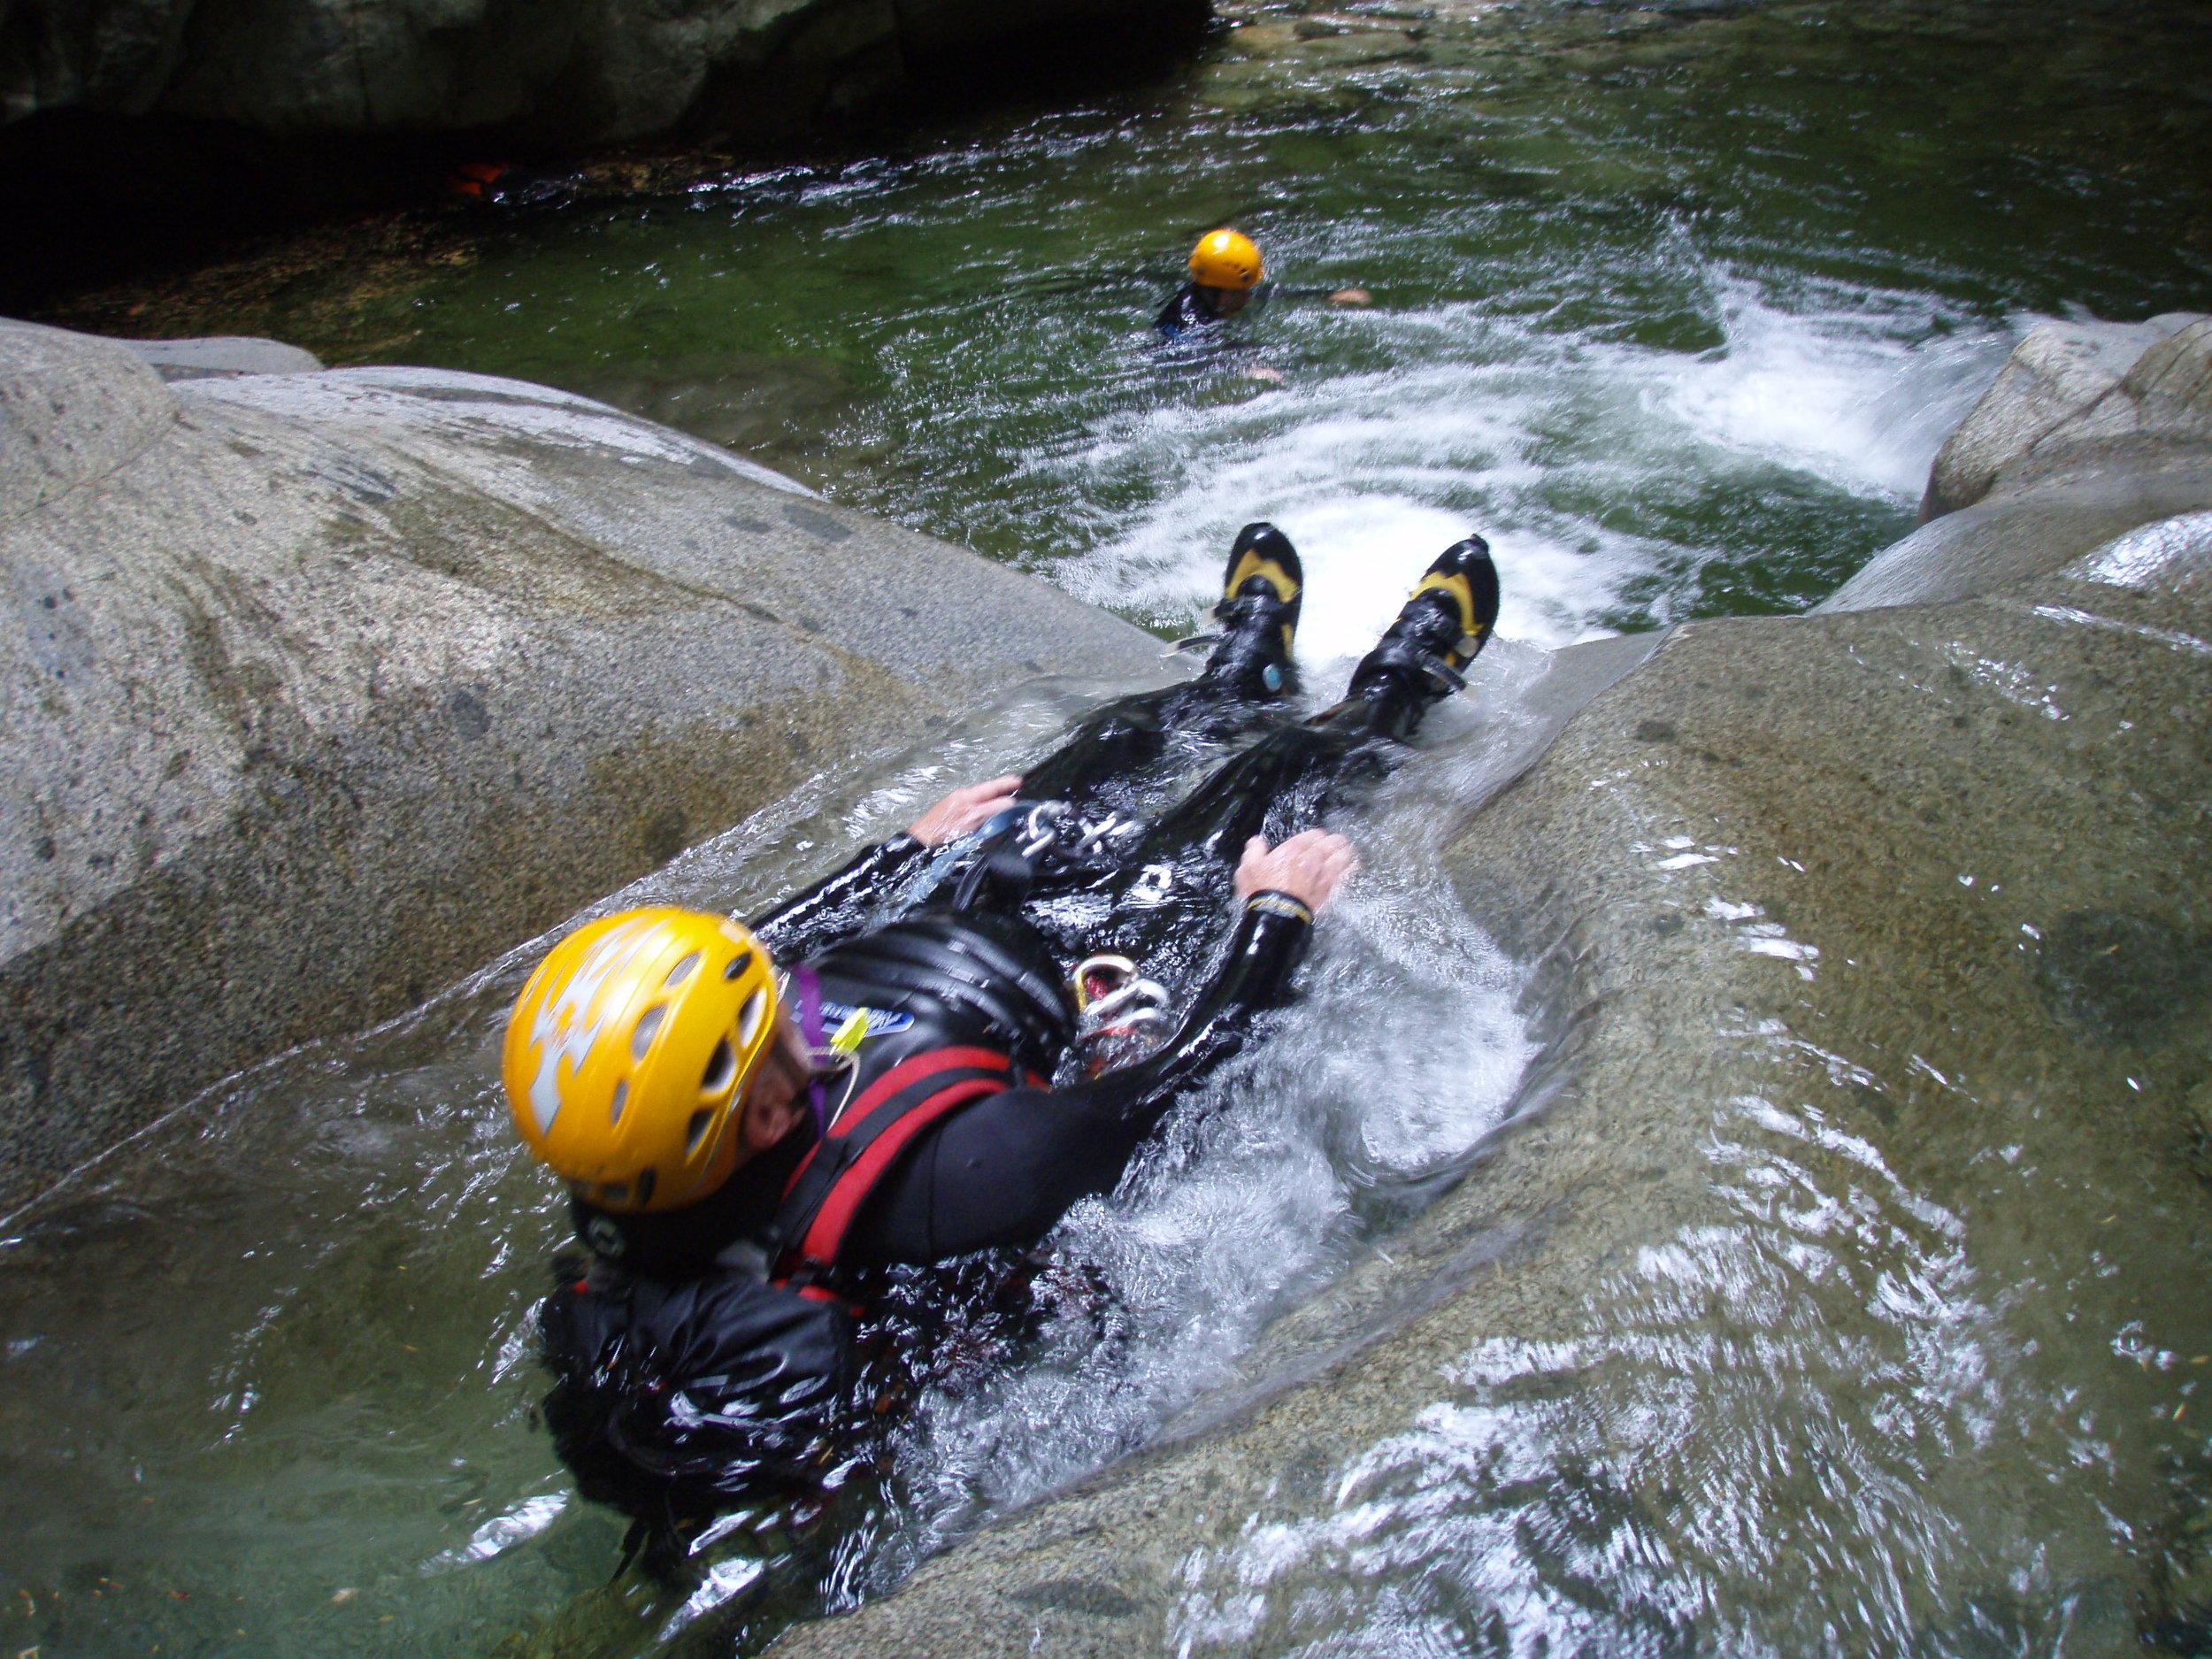 Canyoneering: it's not climbing - Navigating pools while safely managing ropes and rappels is a canyoneering-specific skill. Just because someone knows how to climb does not make them a qualified canyoneer.